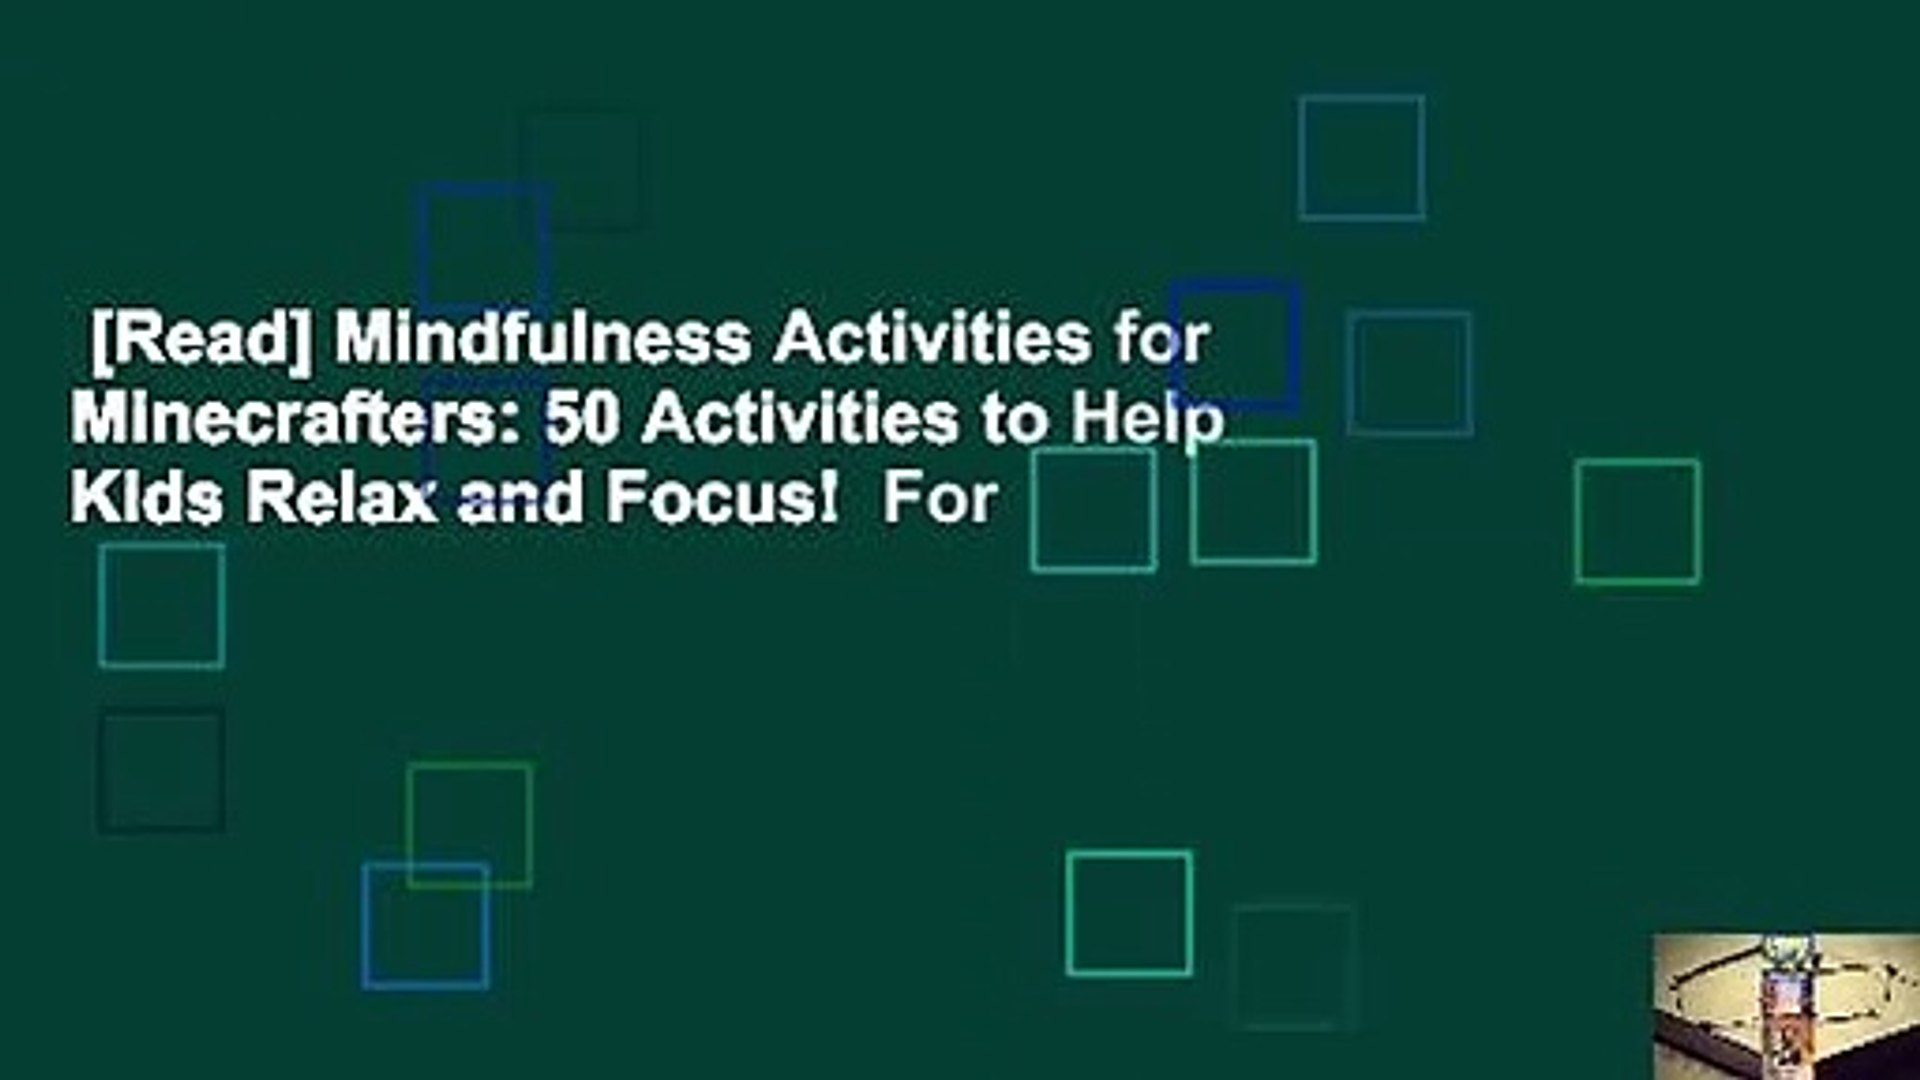 [Read] Mindfulness Activities for Minecrafters: 50 Activities to Help Kids Relax and Focus!  For